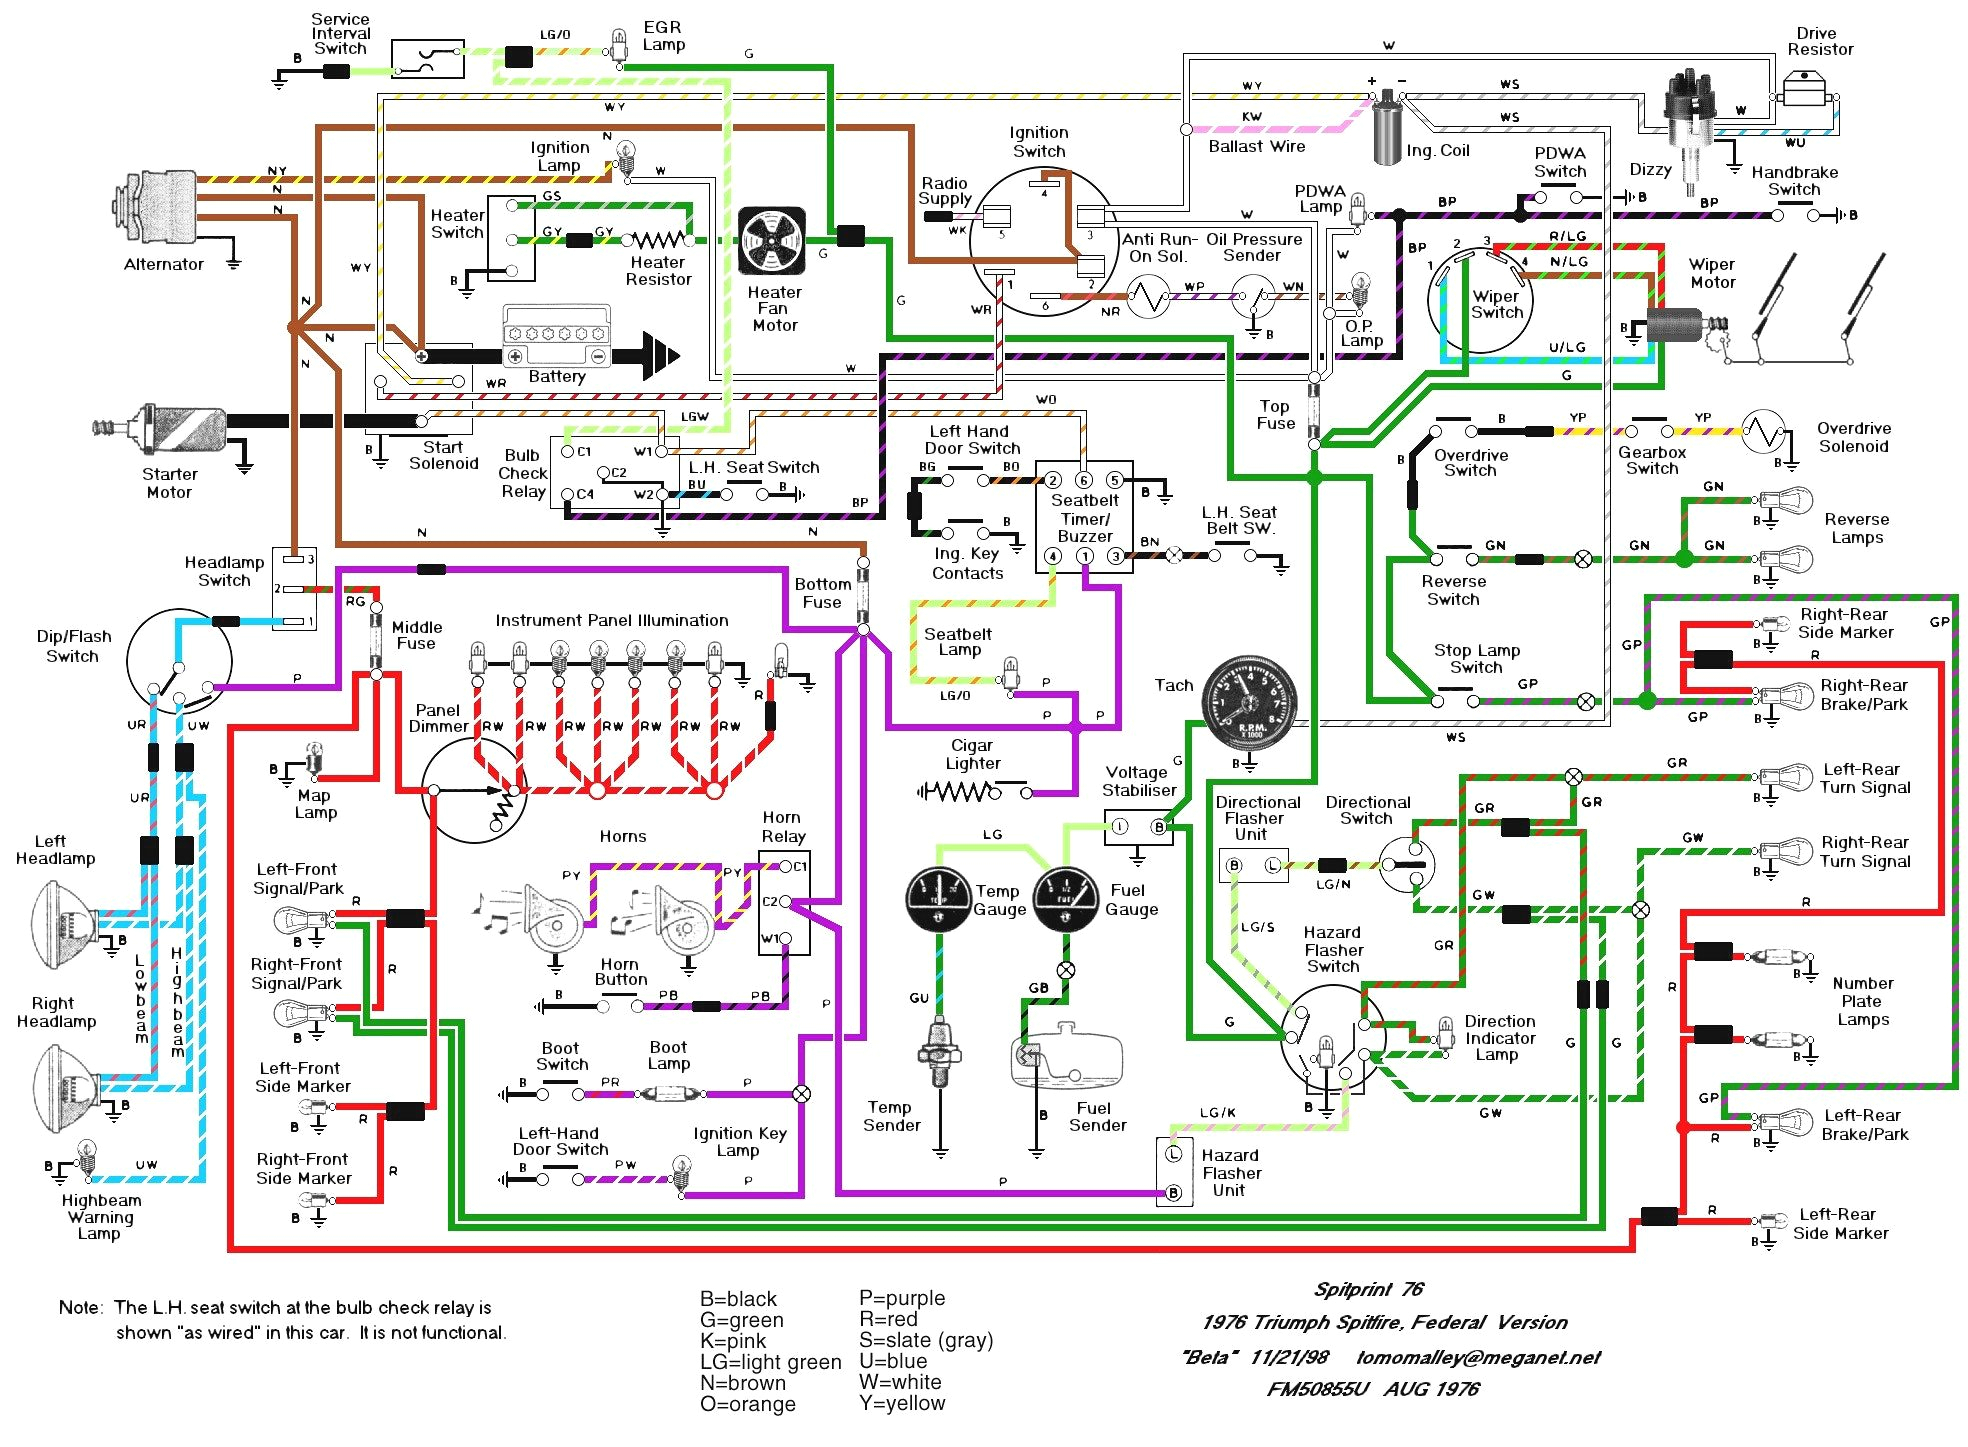 bluebird wiring diagram wiring diagram name 910 bluebird wiring diagram